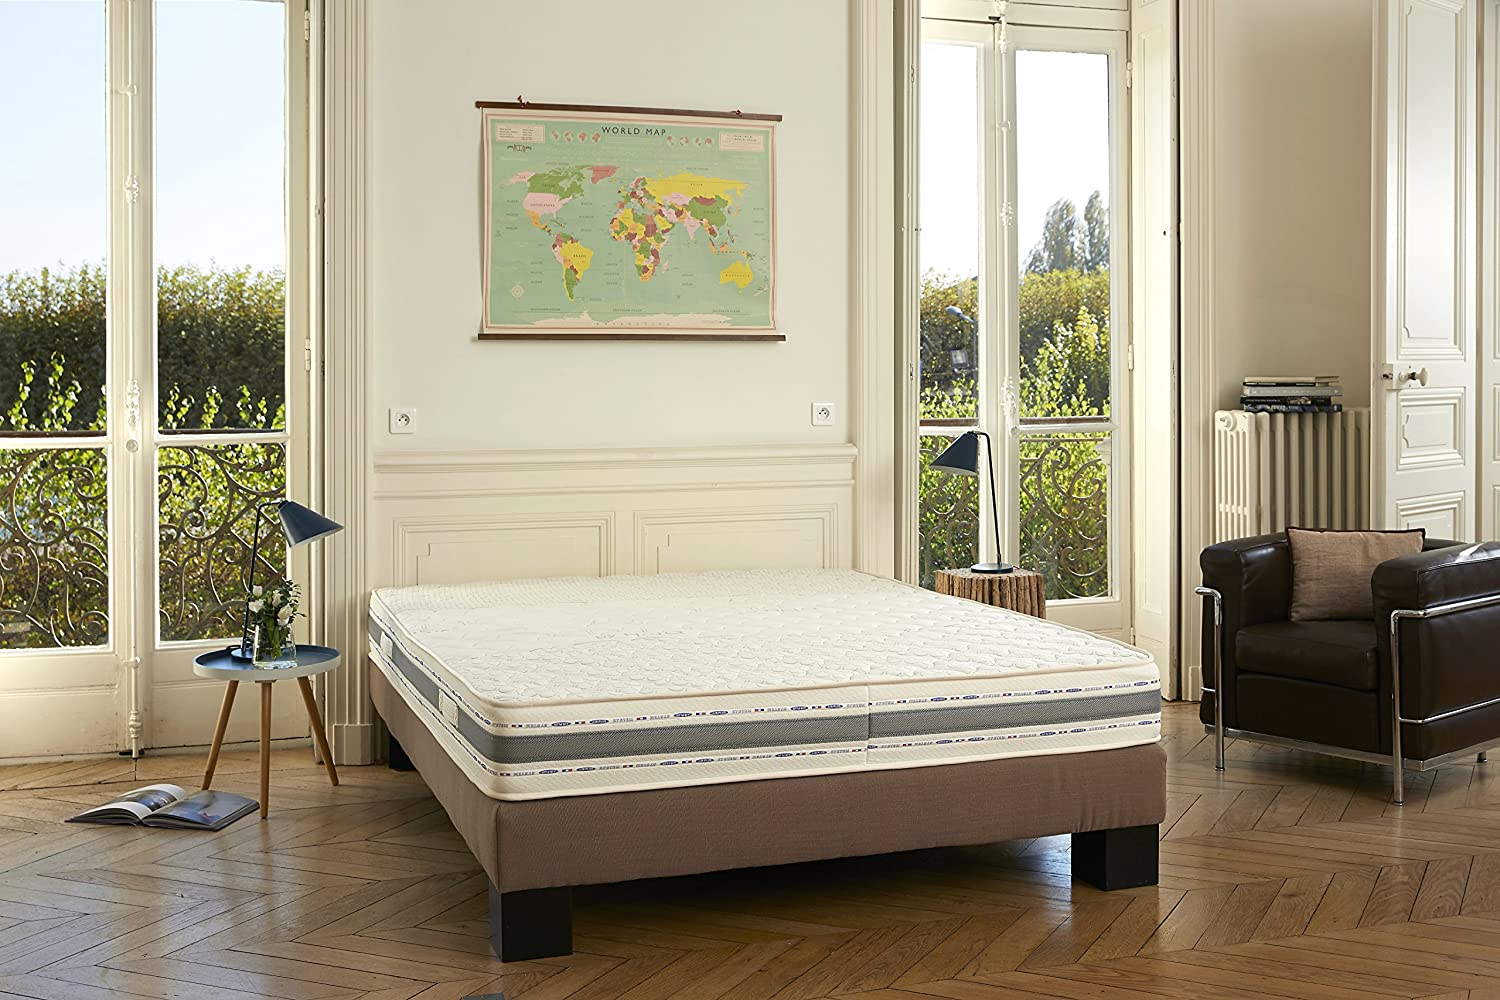 Matelas Services Premium Memory Mattress 140 X 190 Amazon